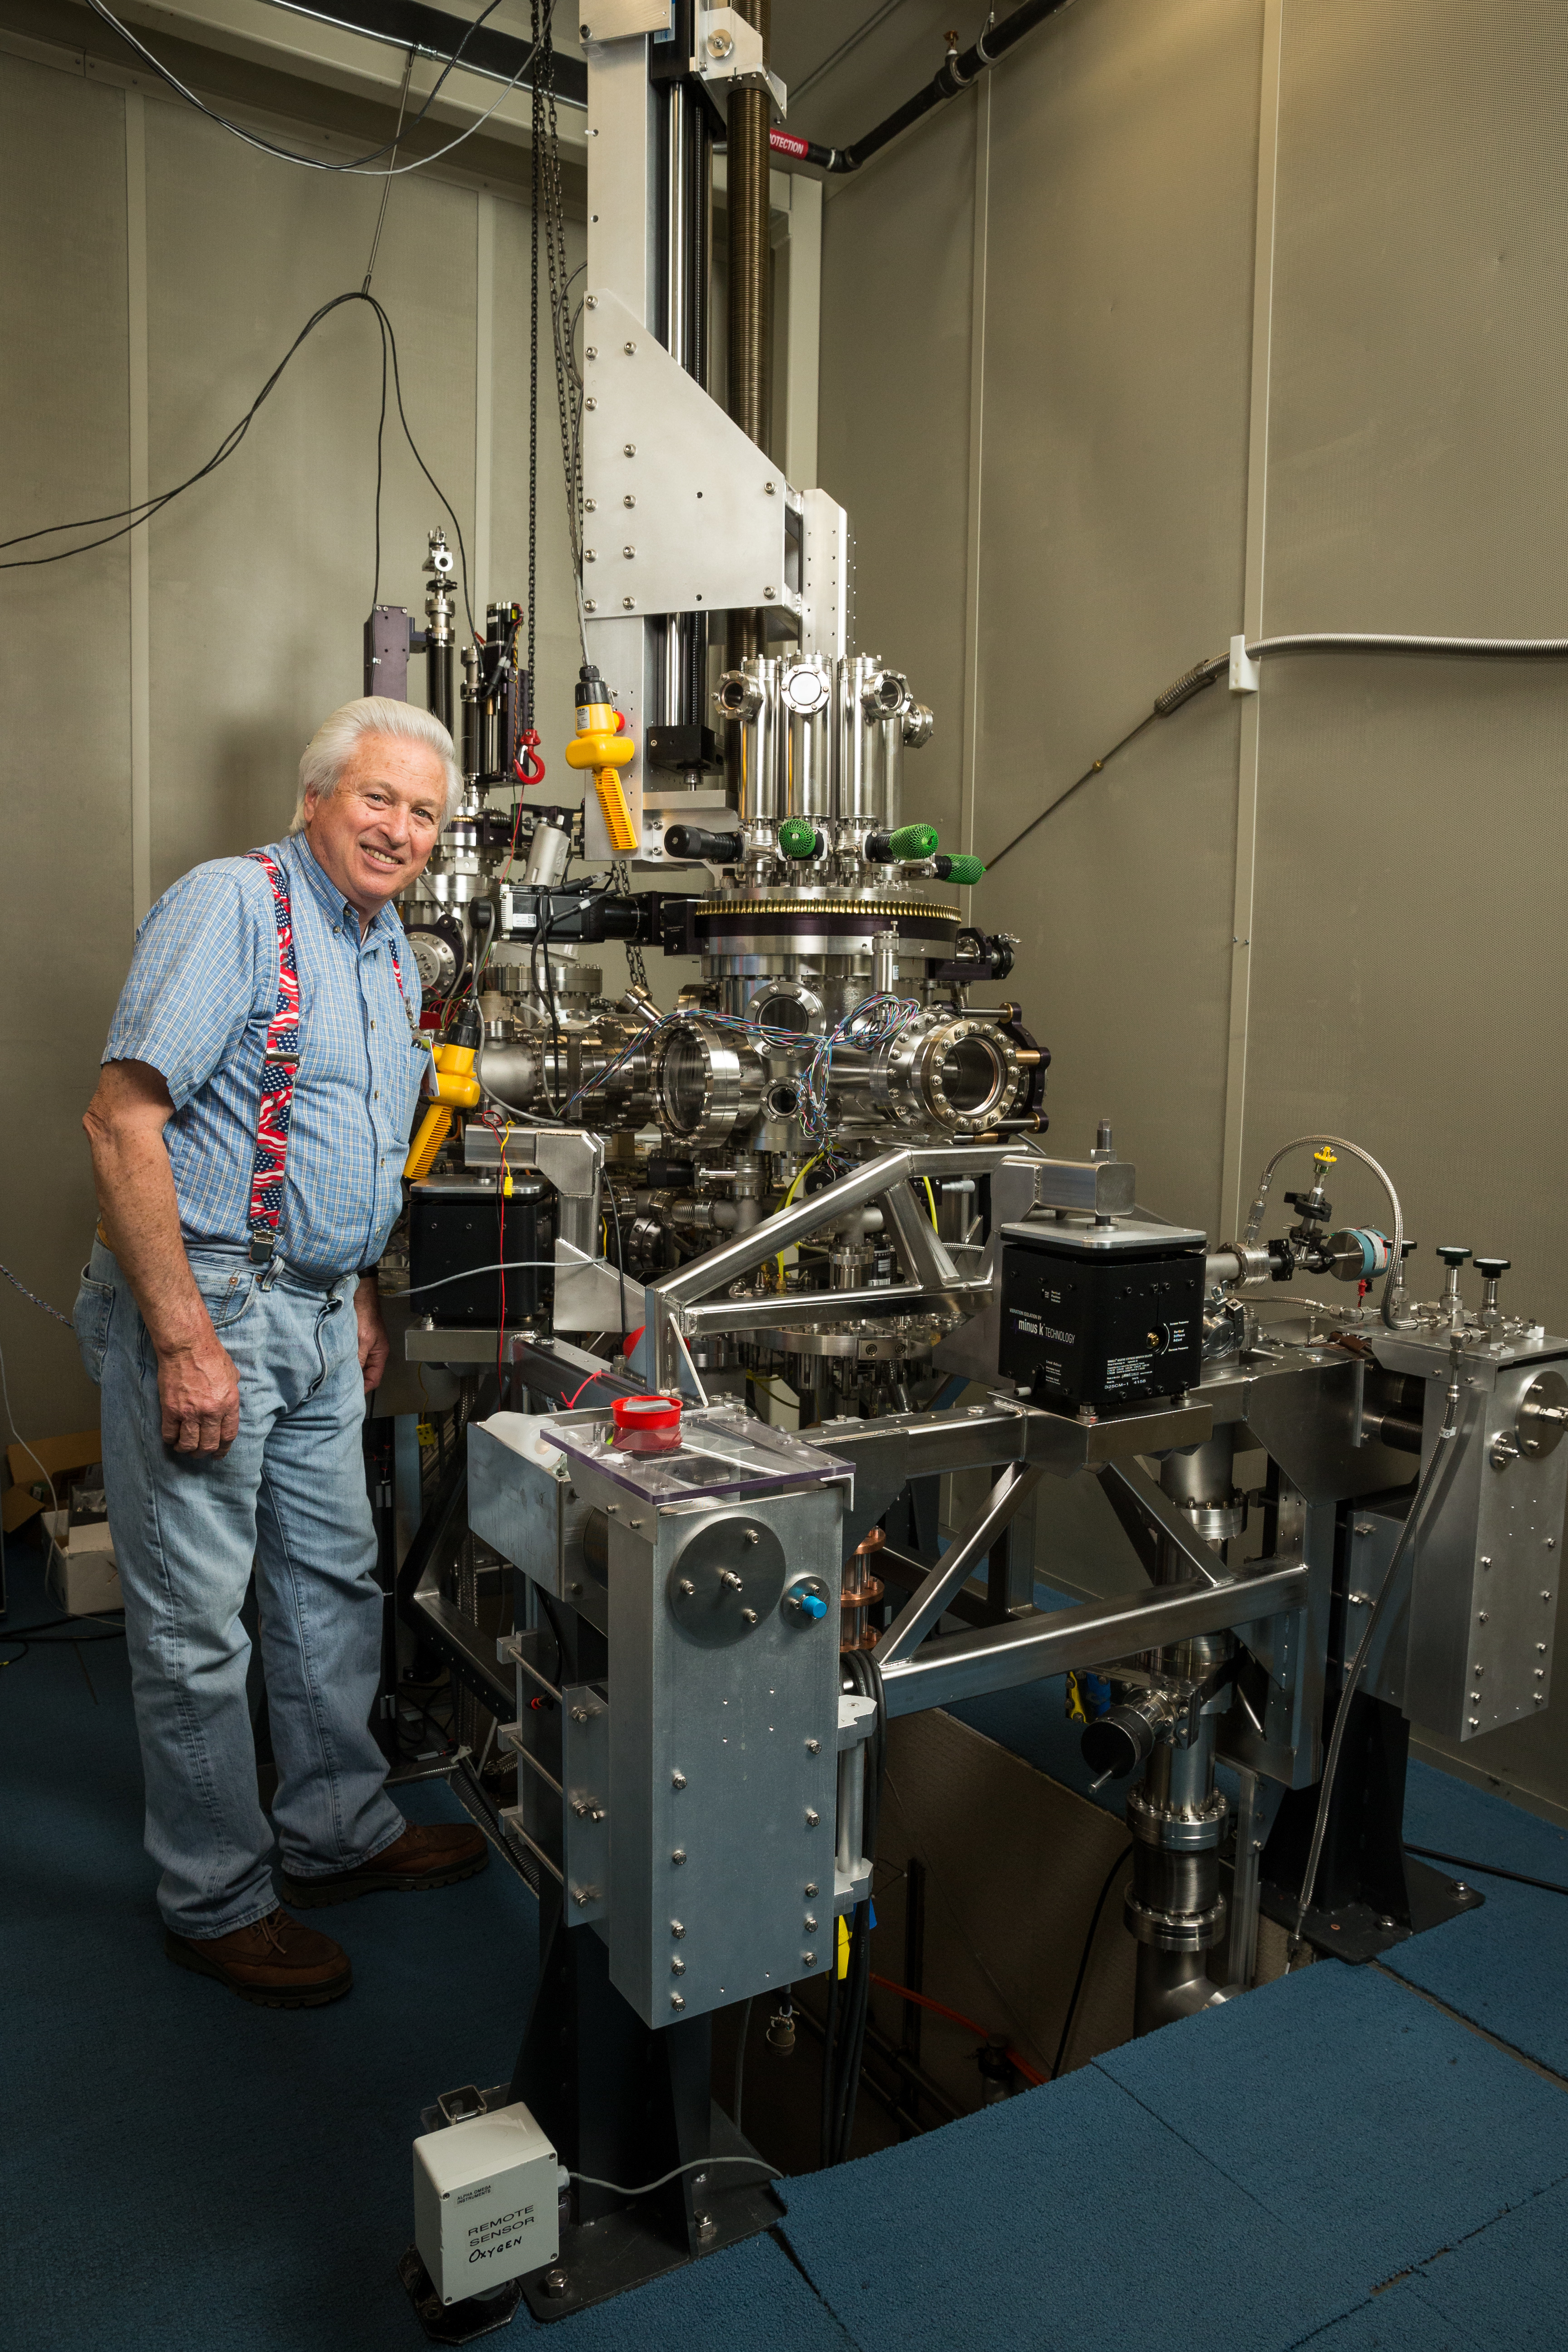 IBM can store a bit of data on a single atom, but the scanning tunneling microscope needed to do so is vastly larger. Here IBM microscope mechanic Bruce Melior stands by the device.